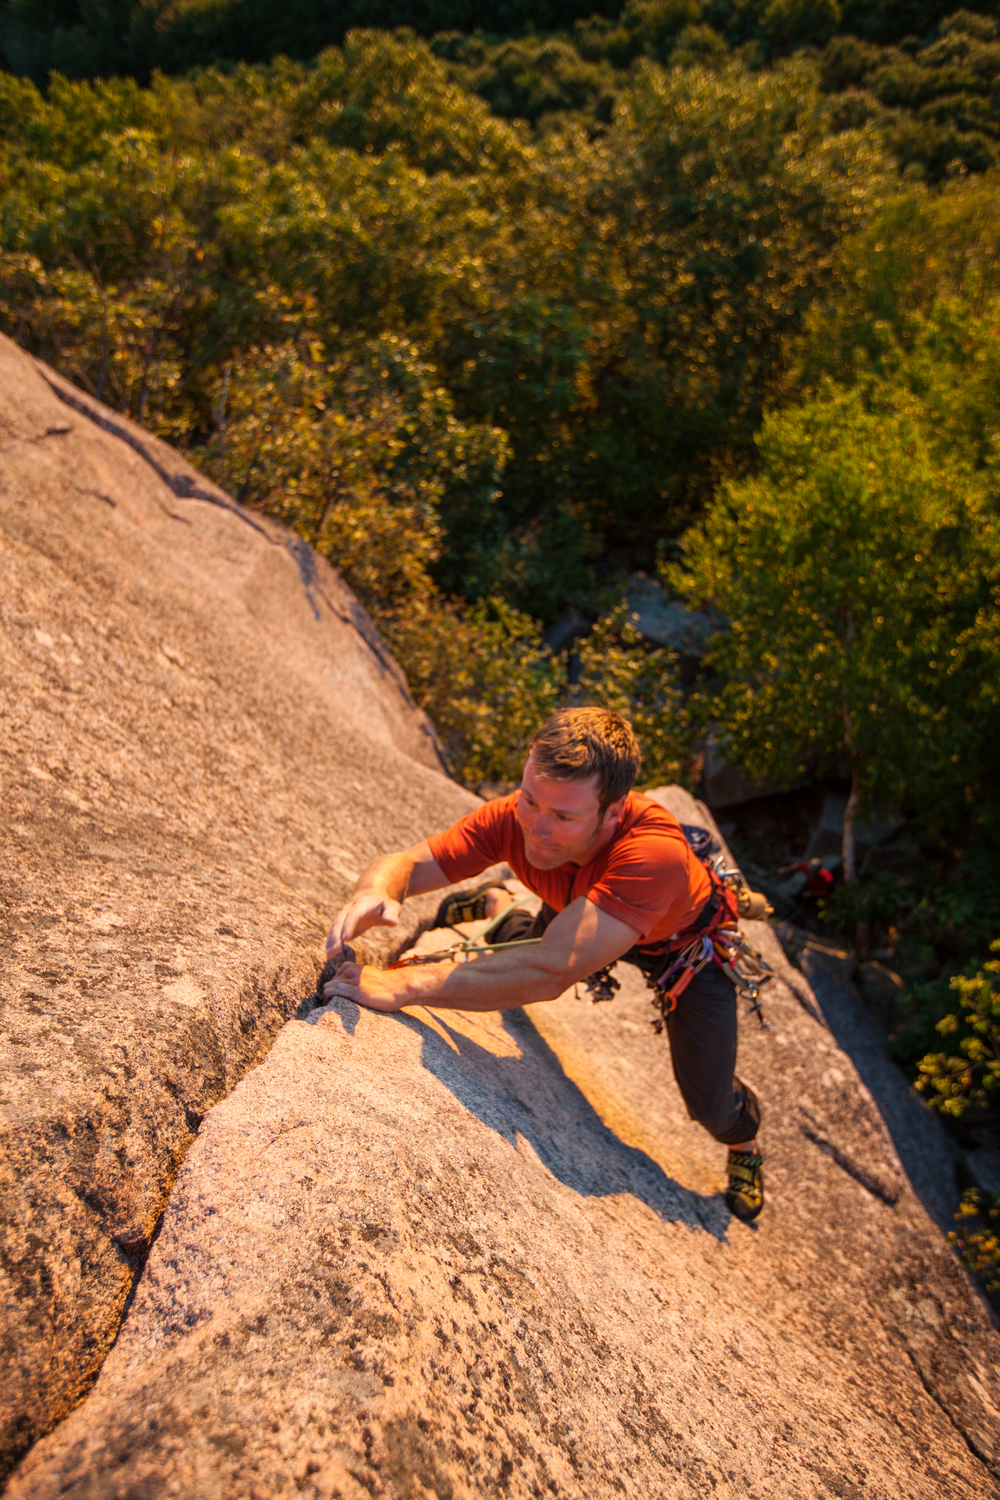 Owen Cassidy on Bartleby (5.8).